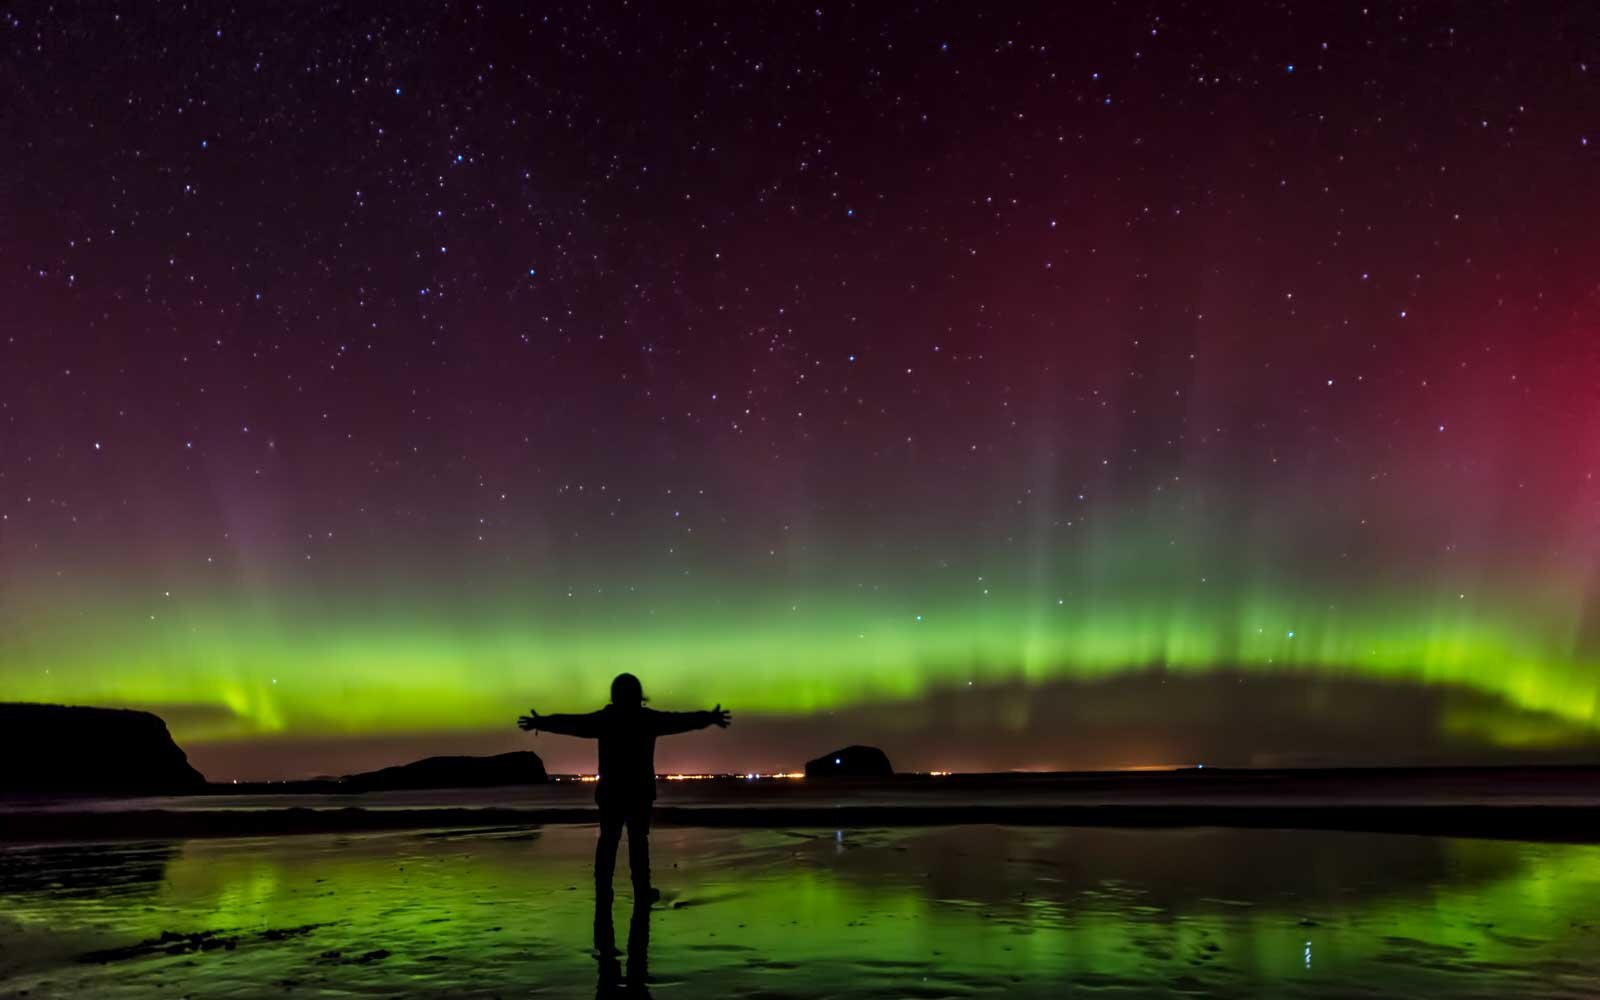 Best Place To See Northern Lights 2020 Best Places to See the Northern Lights | Travel + Leisure